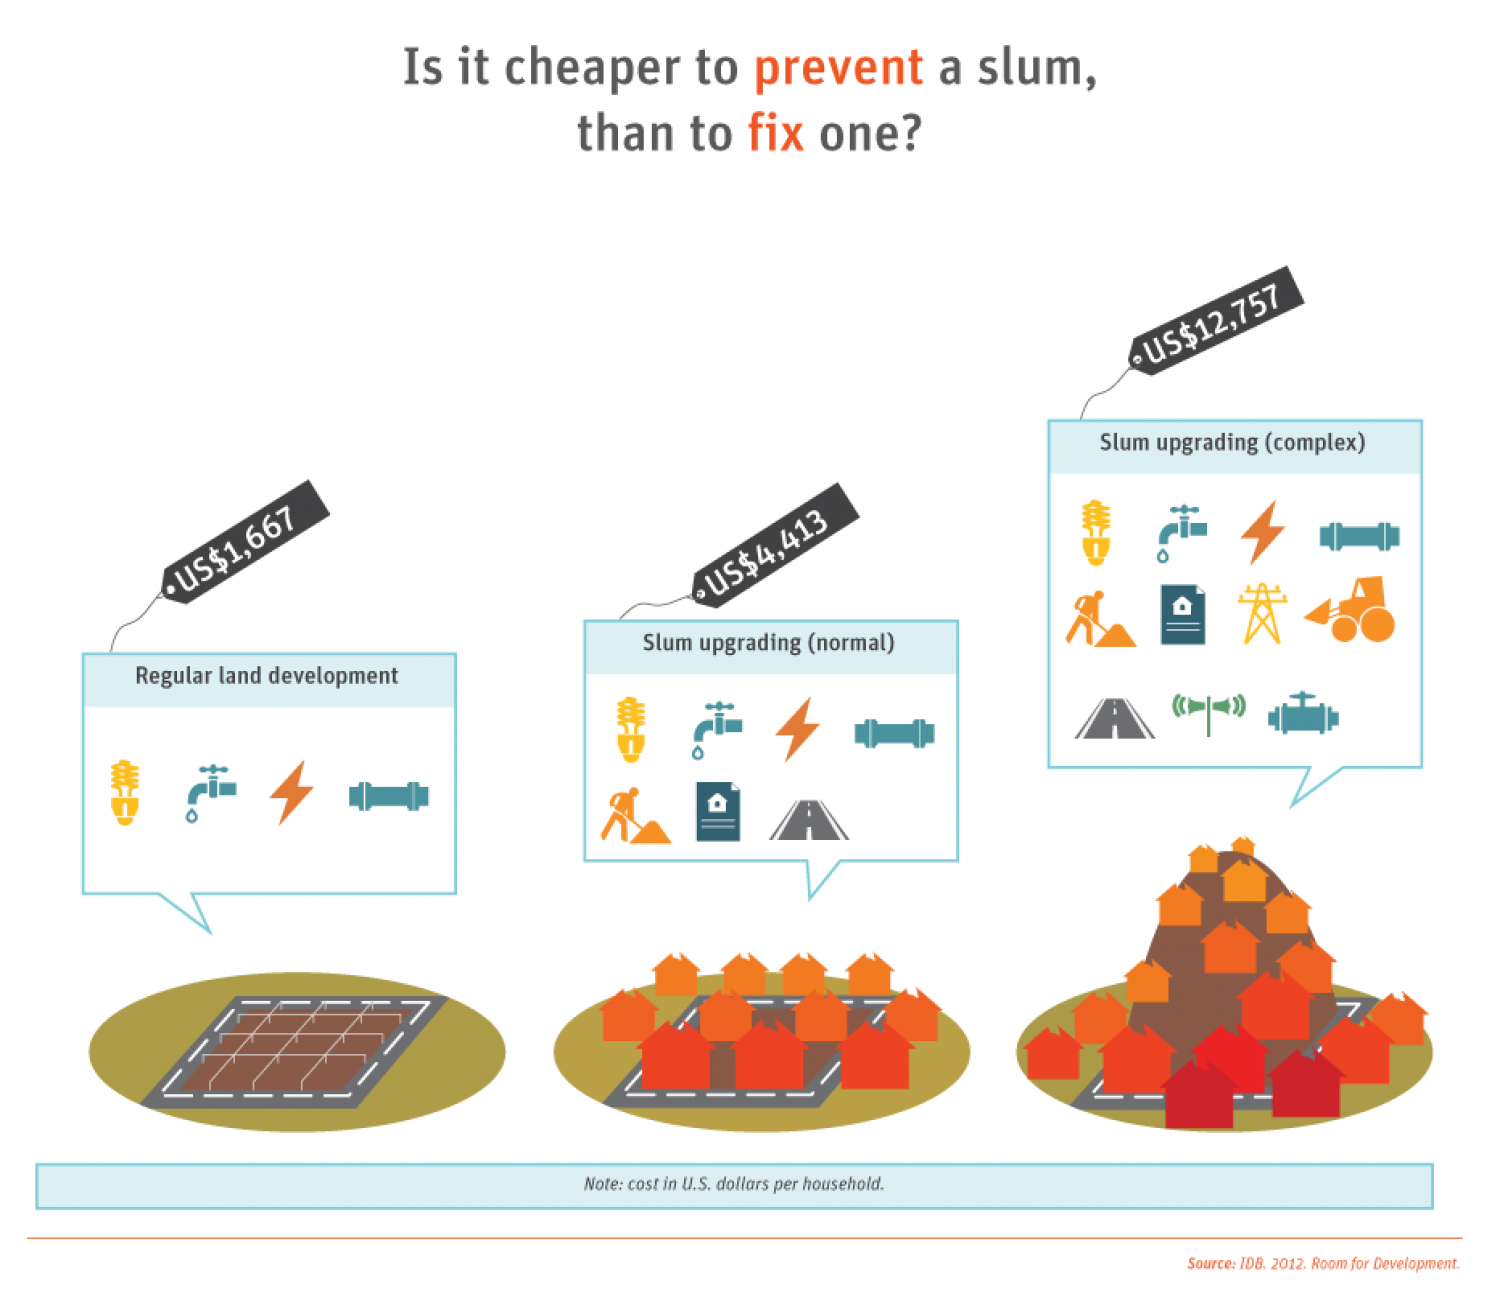 Development in the Americas - Housing for All: Preventing vs. Fixing Slums Infographic